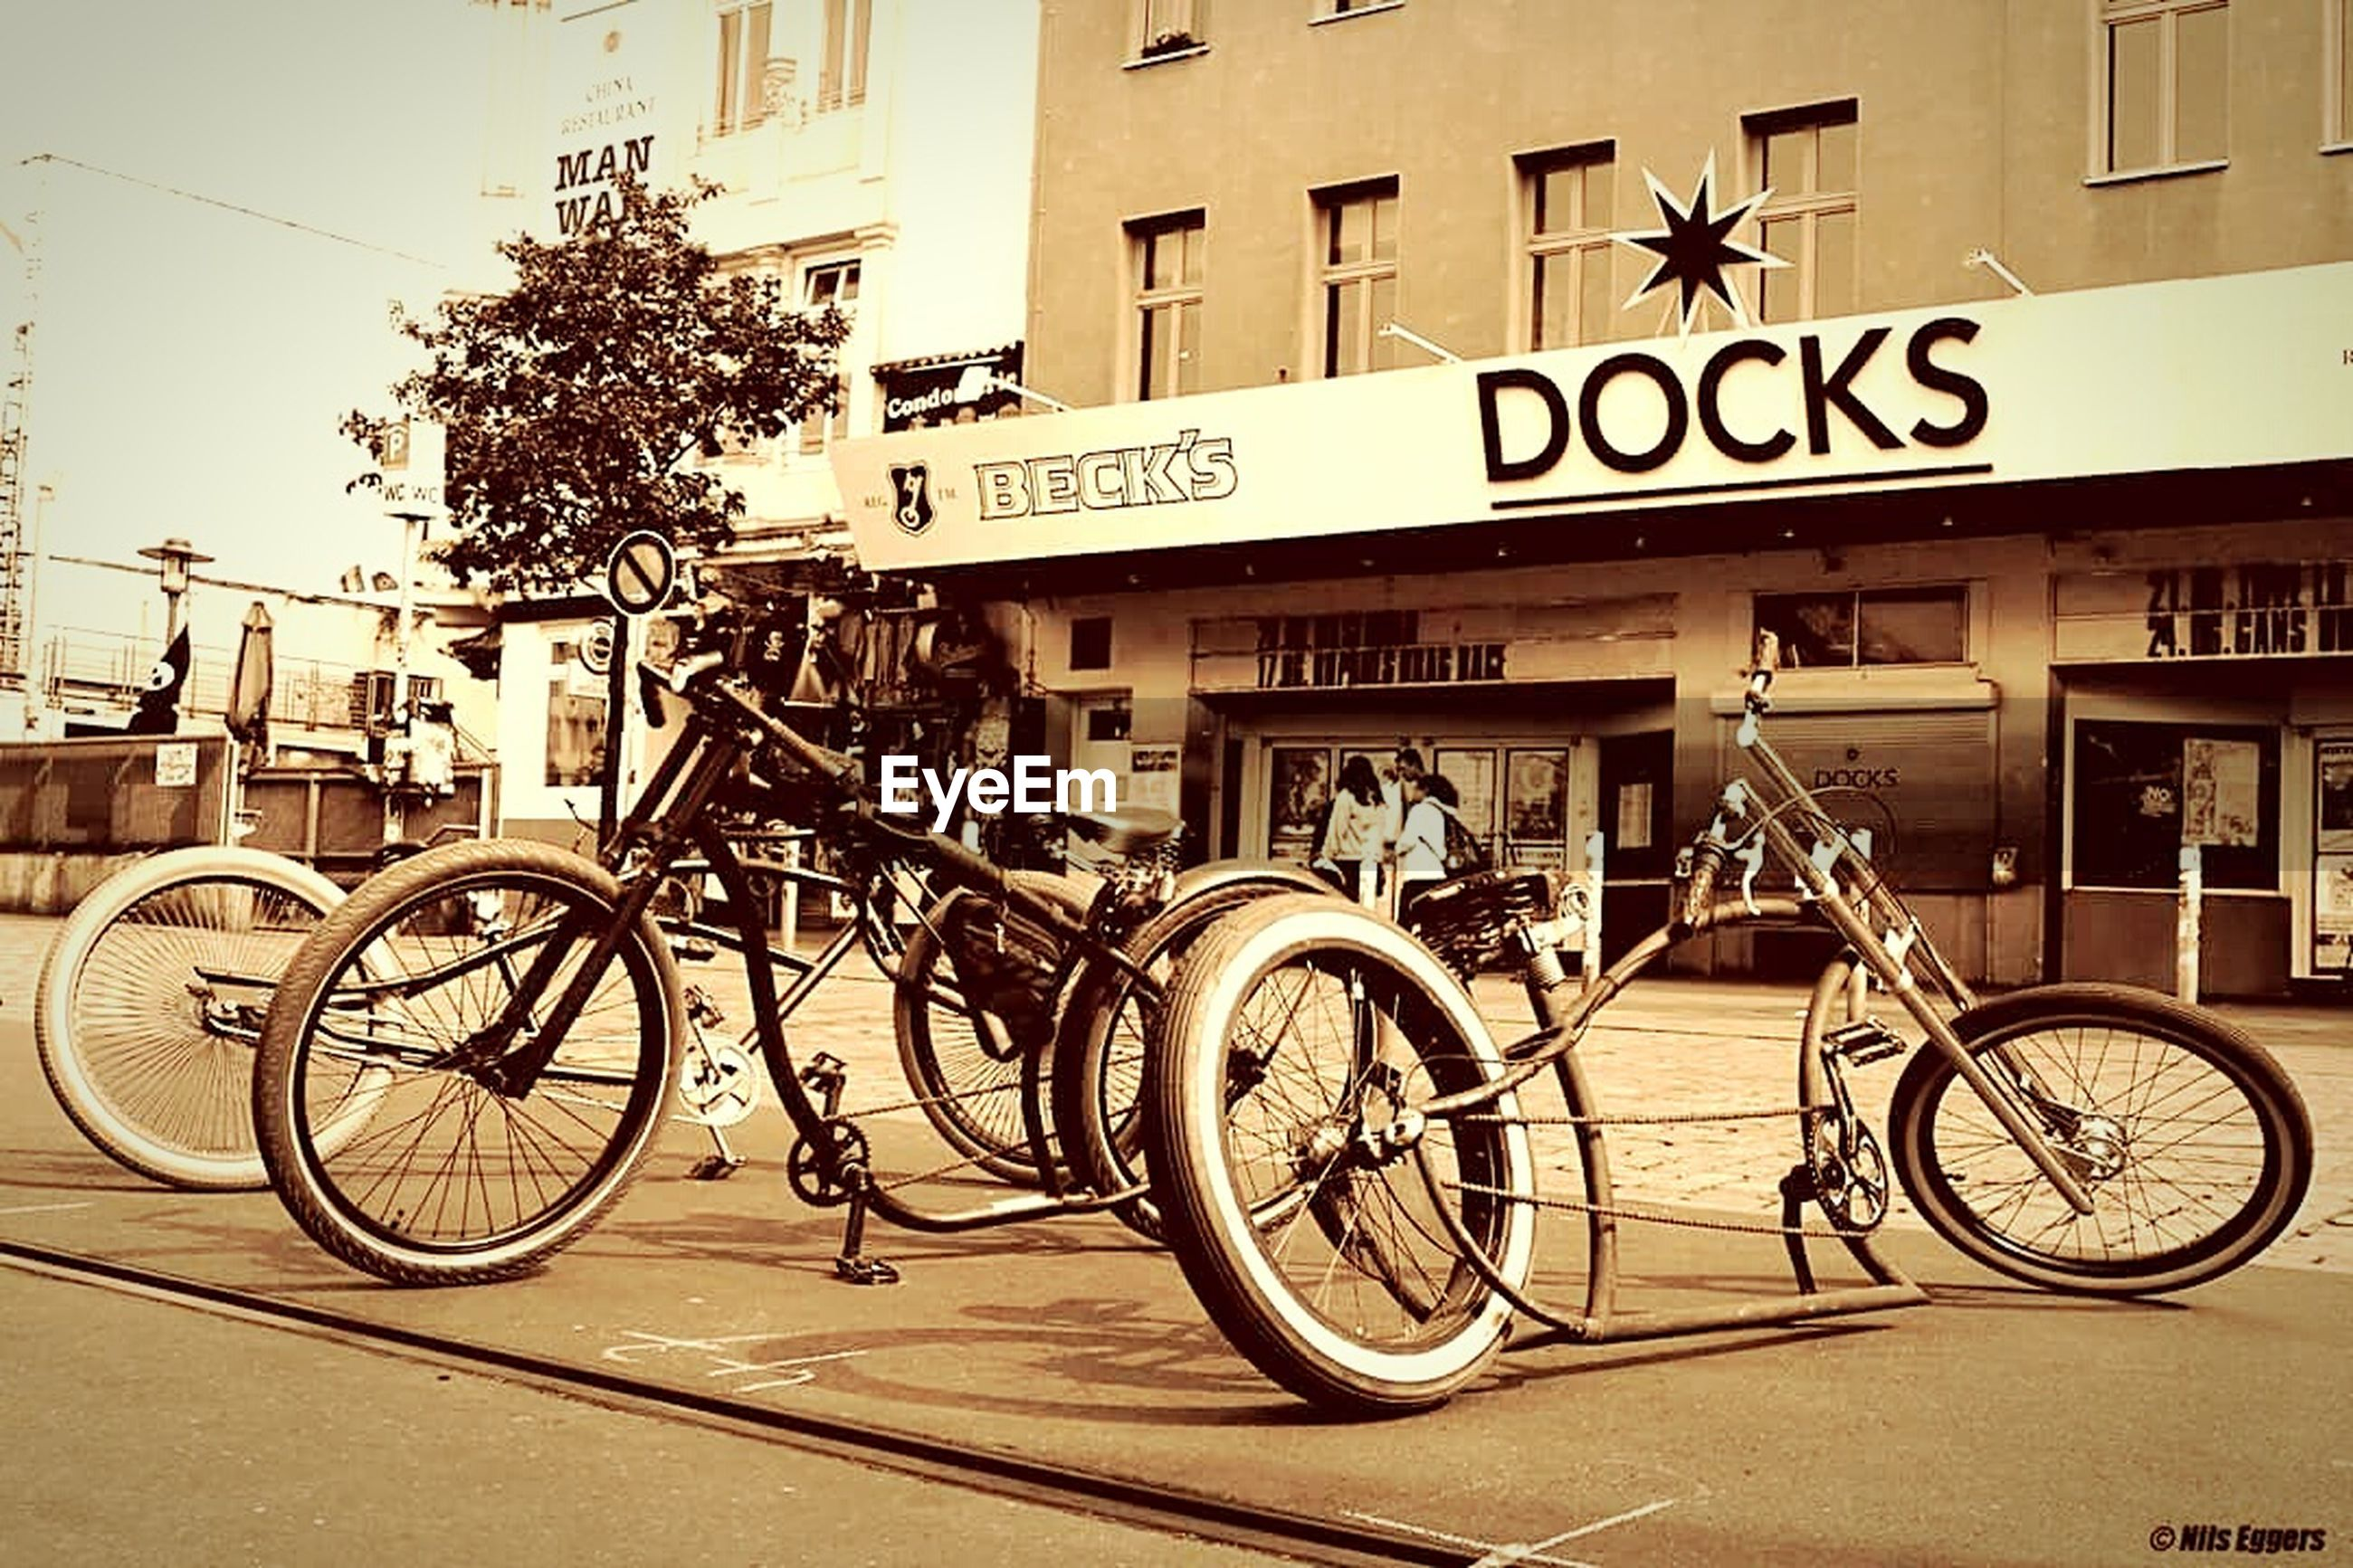 bicycle, text, western script, transportation, mode of transport, land vehicle, building exterior, outdoors, architecture, communication, built structure, stationary, day, city, road sign, no people, sky